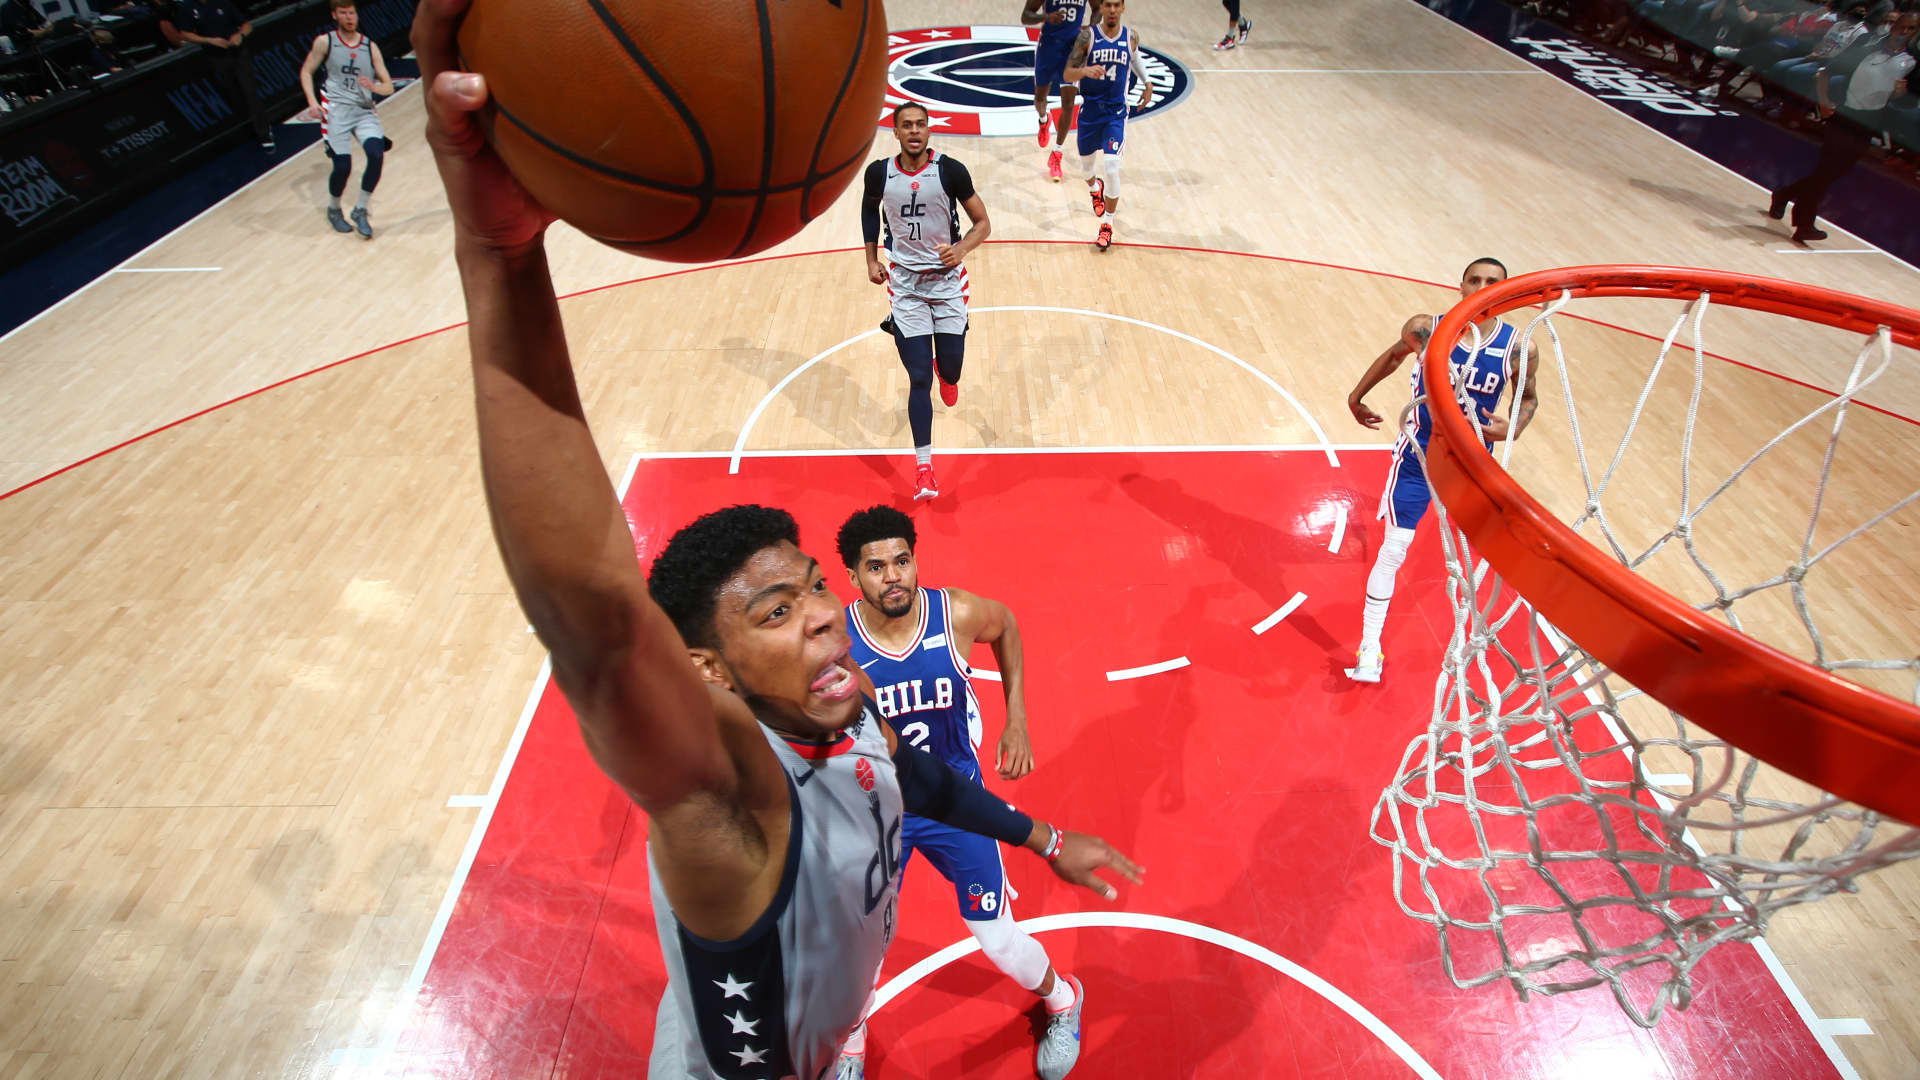 Rui Hachimura #8 of the Washington Wizards dunks the ball during the game against the Philadelphia 76ers during Round 1, Game 4 of the 2021 NBA Playoffs on May 31, 2021 at Capital One Arena in Washington, DC.